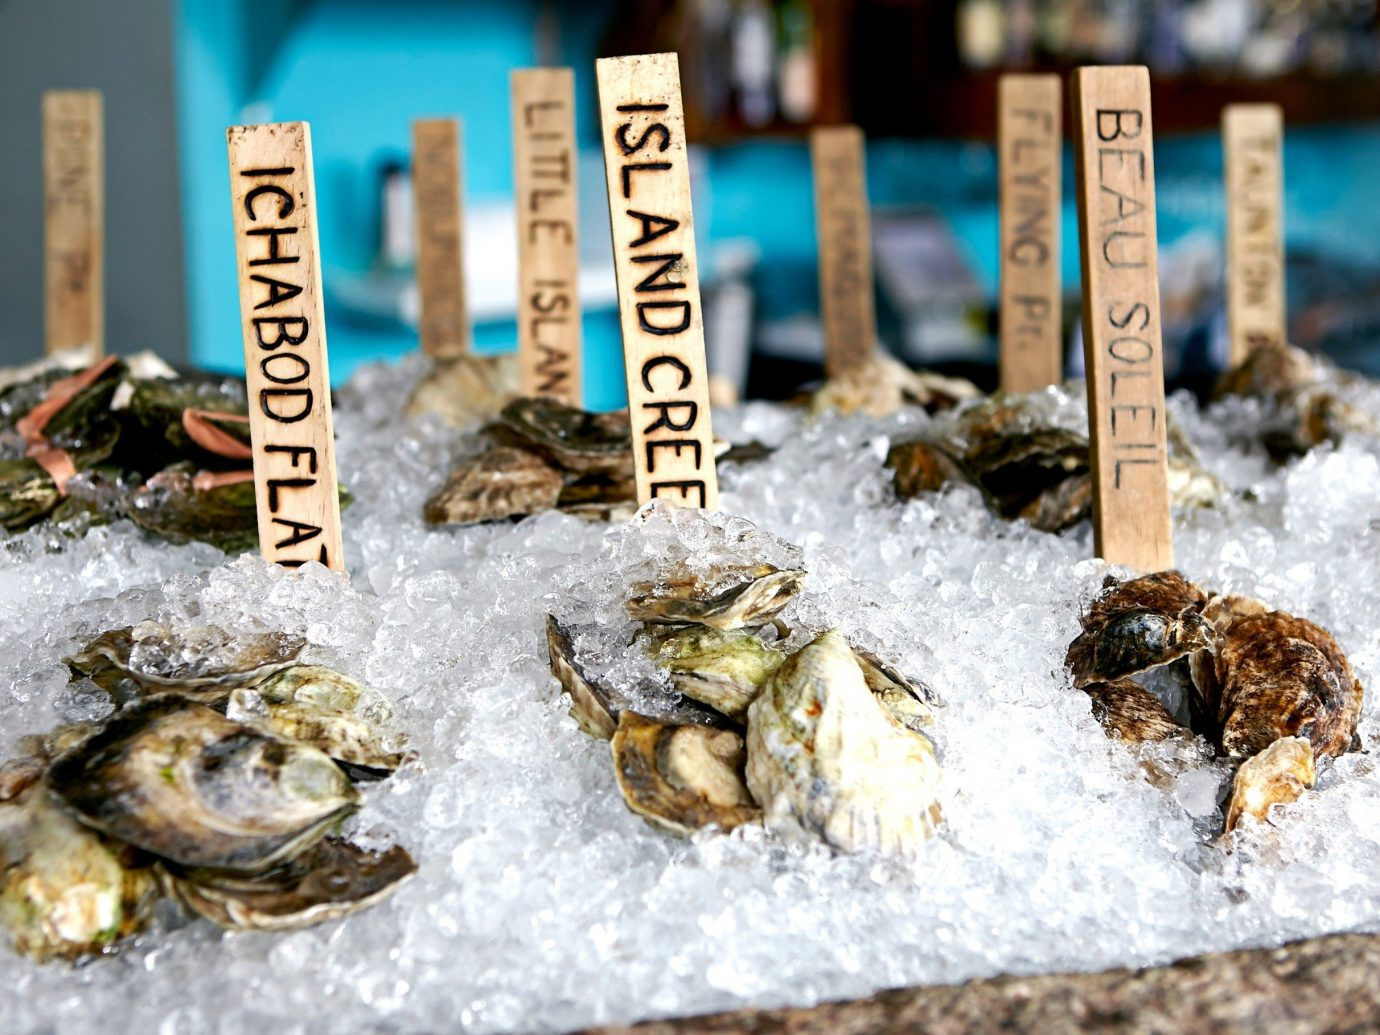 Beach Trip Ideas food indoor Seafood biology invertebrate oyster clams oysters mussels and scallops several